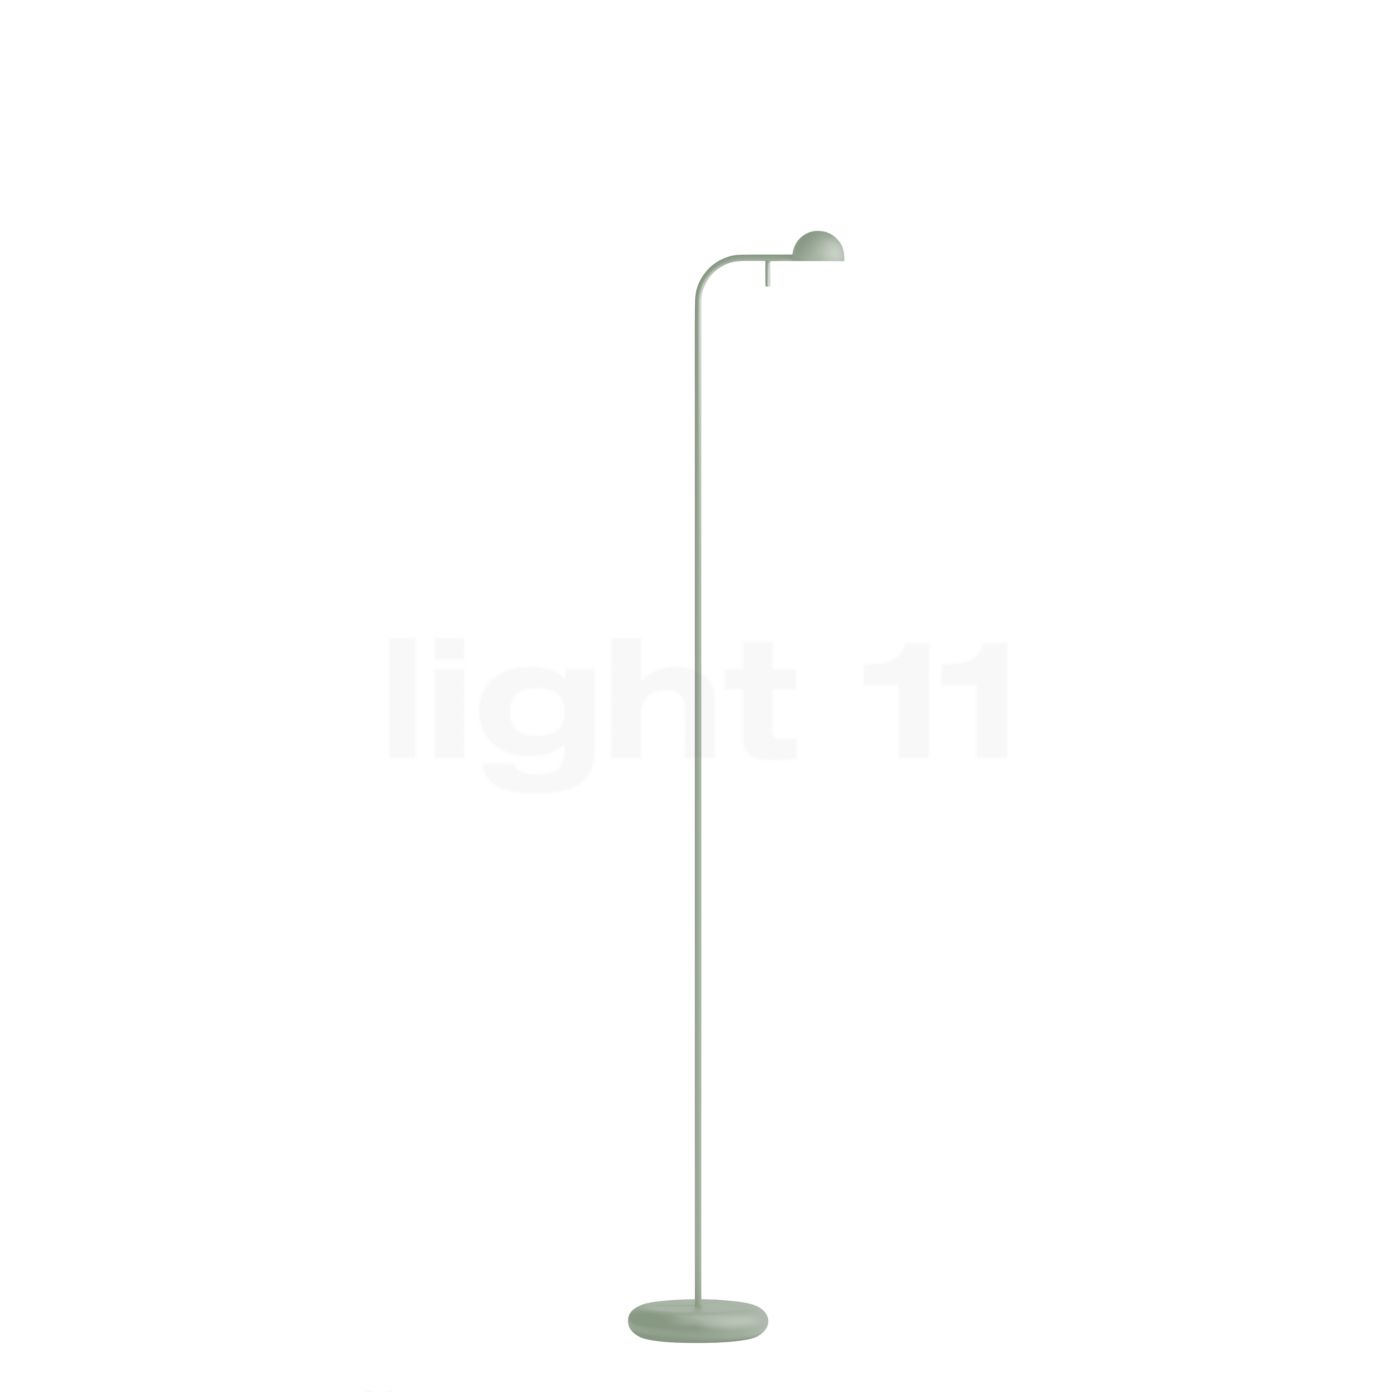 Vibia Pin 1660 Floor Lamp LED Reading Light   Light11.eu